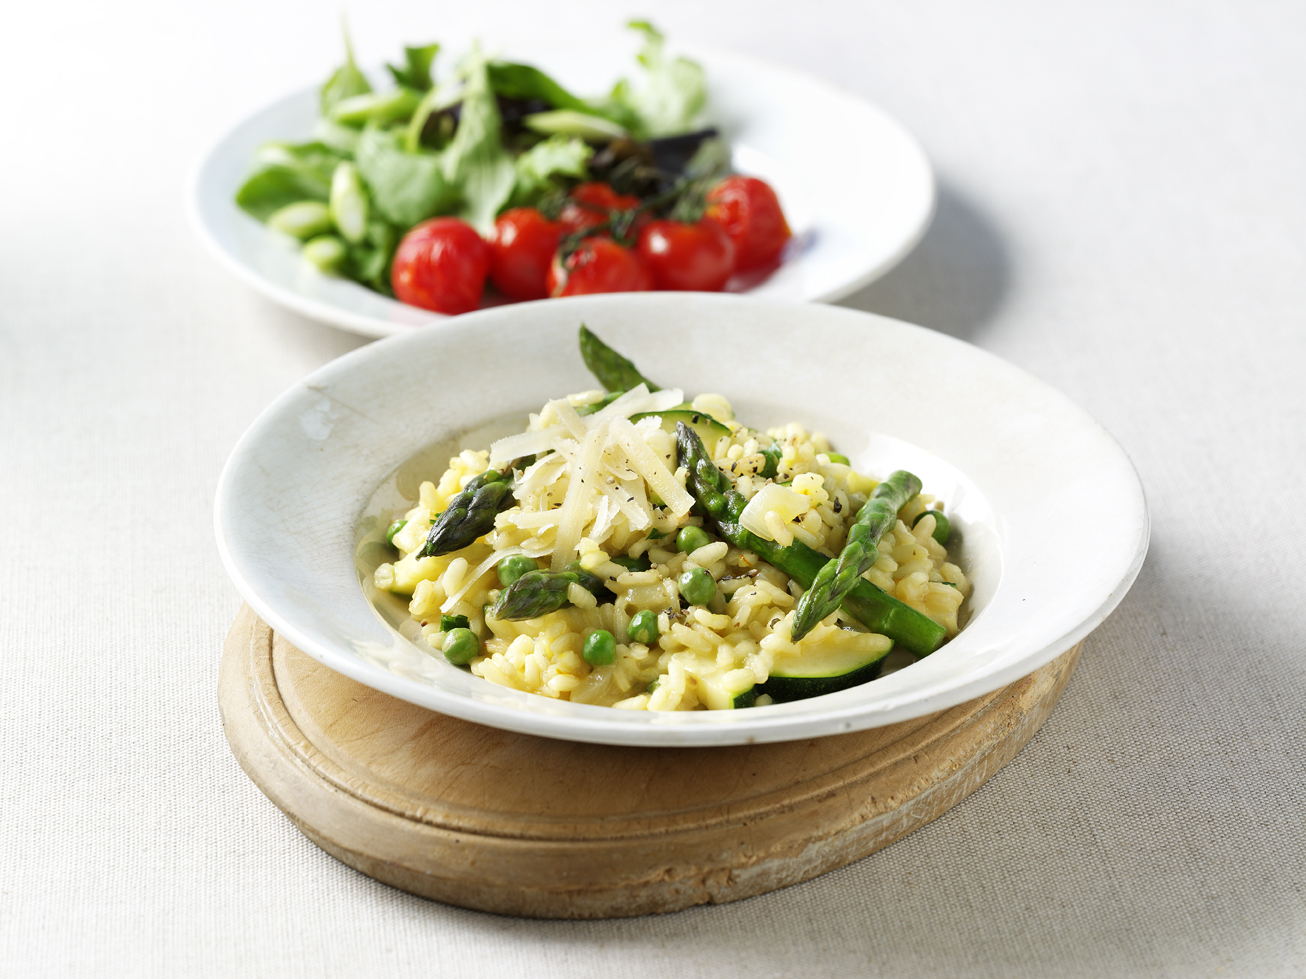 Dinner recipe: Risotto primavera